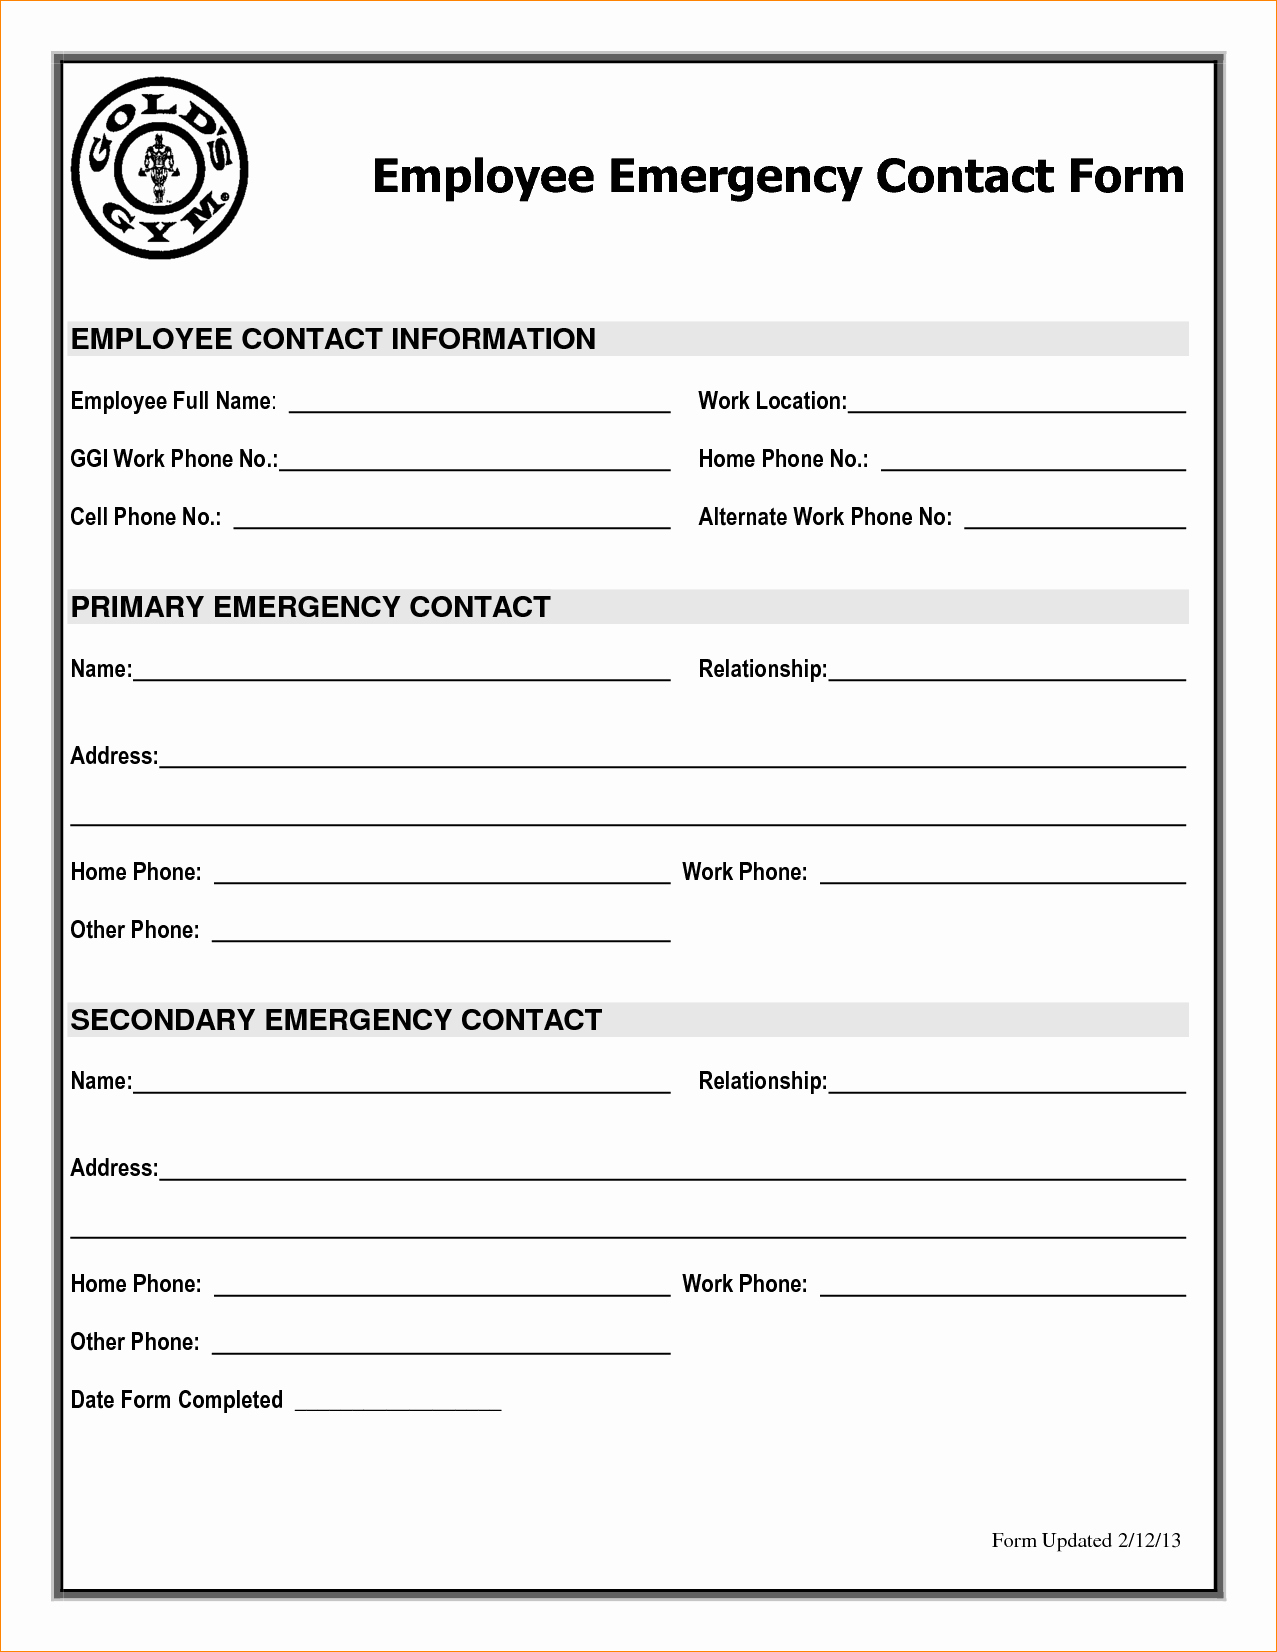 Employee Emergency Contact form Template Beautiful Employee Emergency Contact Printable form to Pin